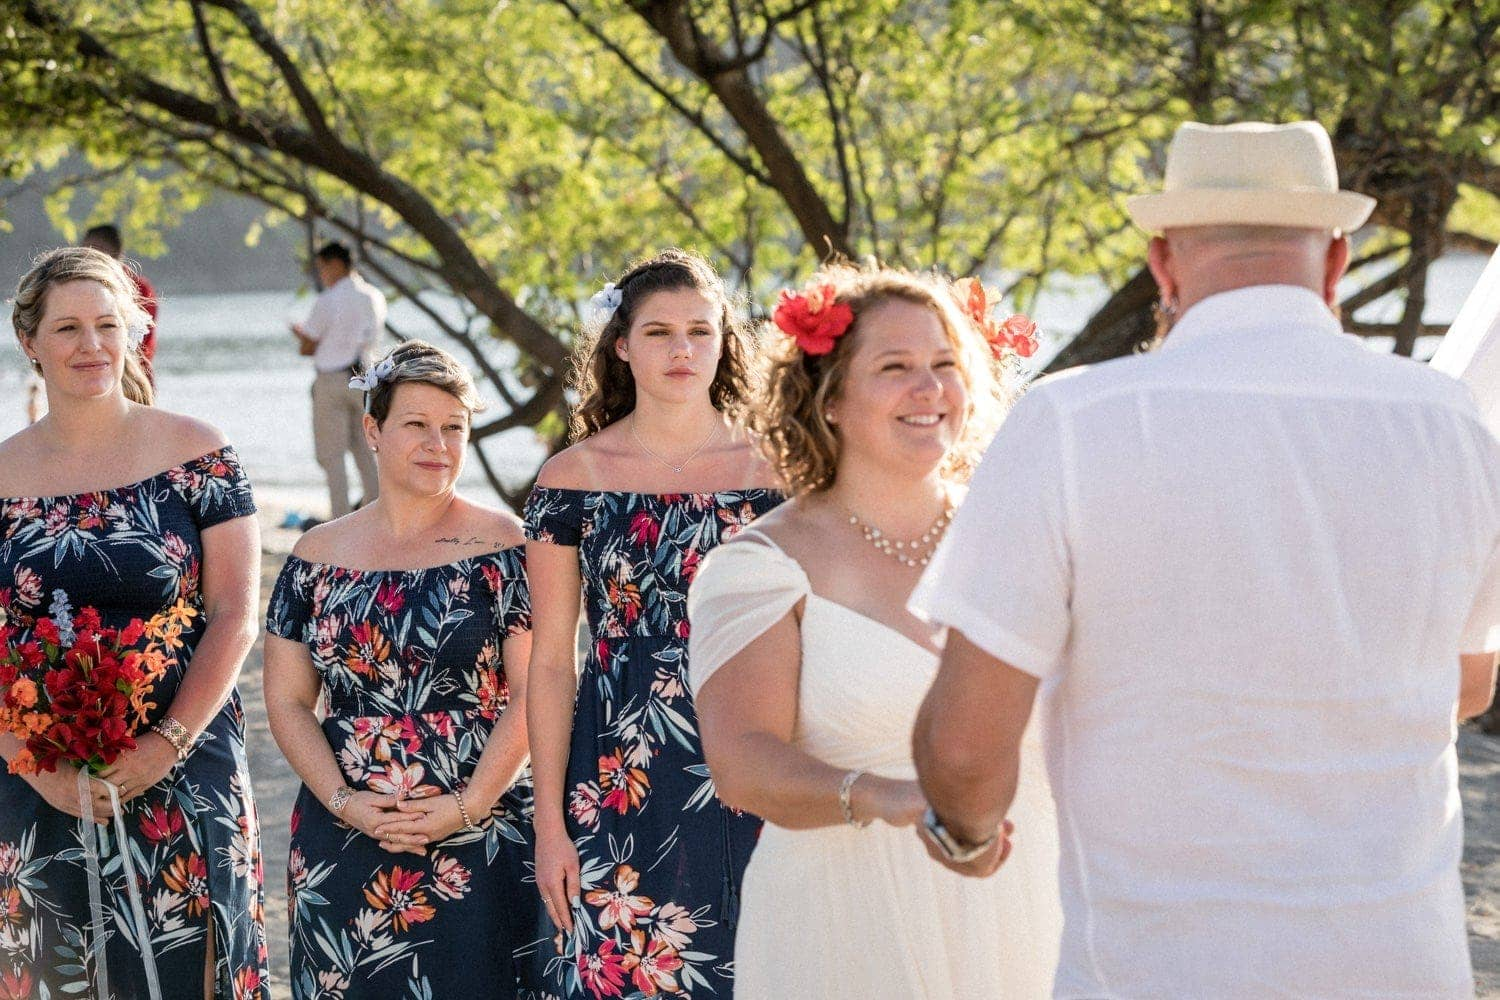 Bridesmaids watch as couple gets married on the beach in Costa Rica.